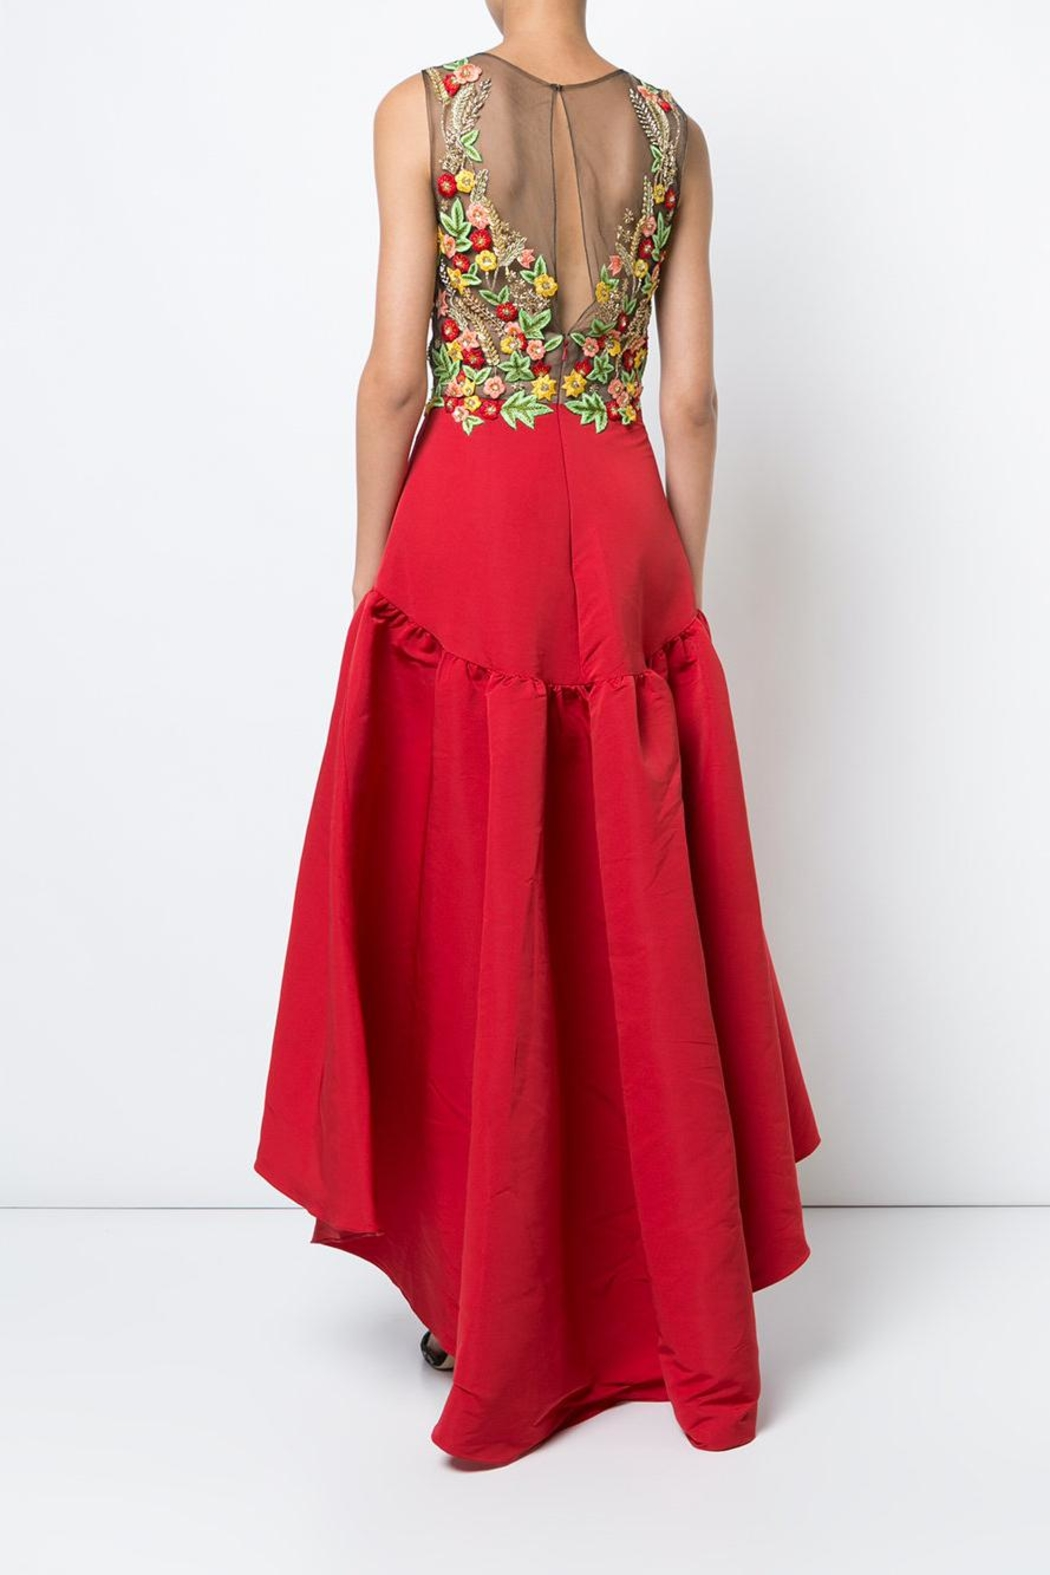 Notte by Marchesa High-Low Floral Dress - Front Full Image